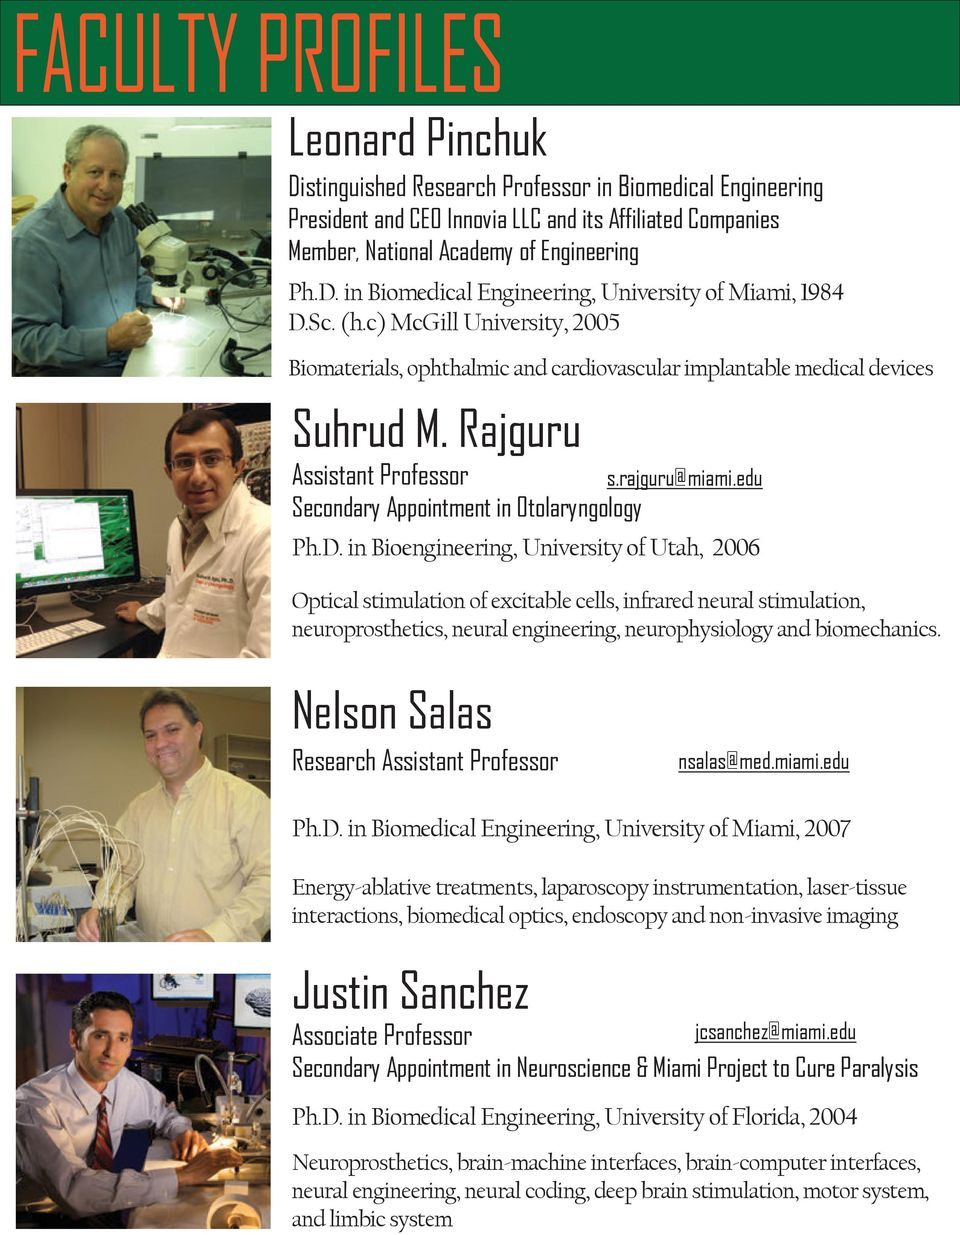 edu Ph.D. in Bioengineering, University of Utah, 2006 Optical stimulation of excitable cells, infrared neural stimulation, neuroprosthetics, neural engineering, neurophysiology and biomechanics.